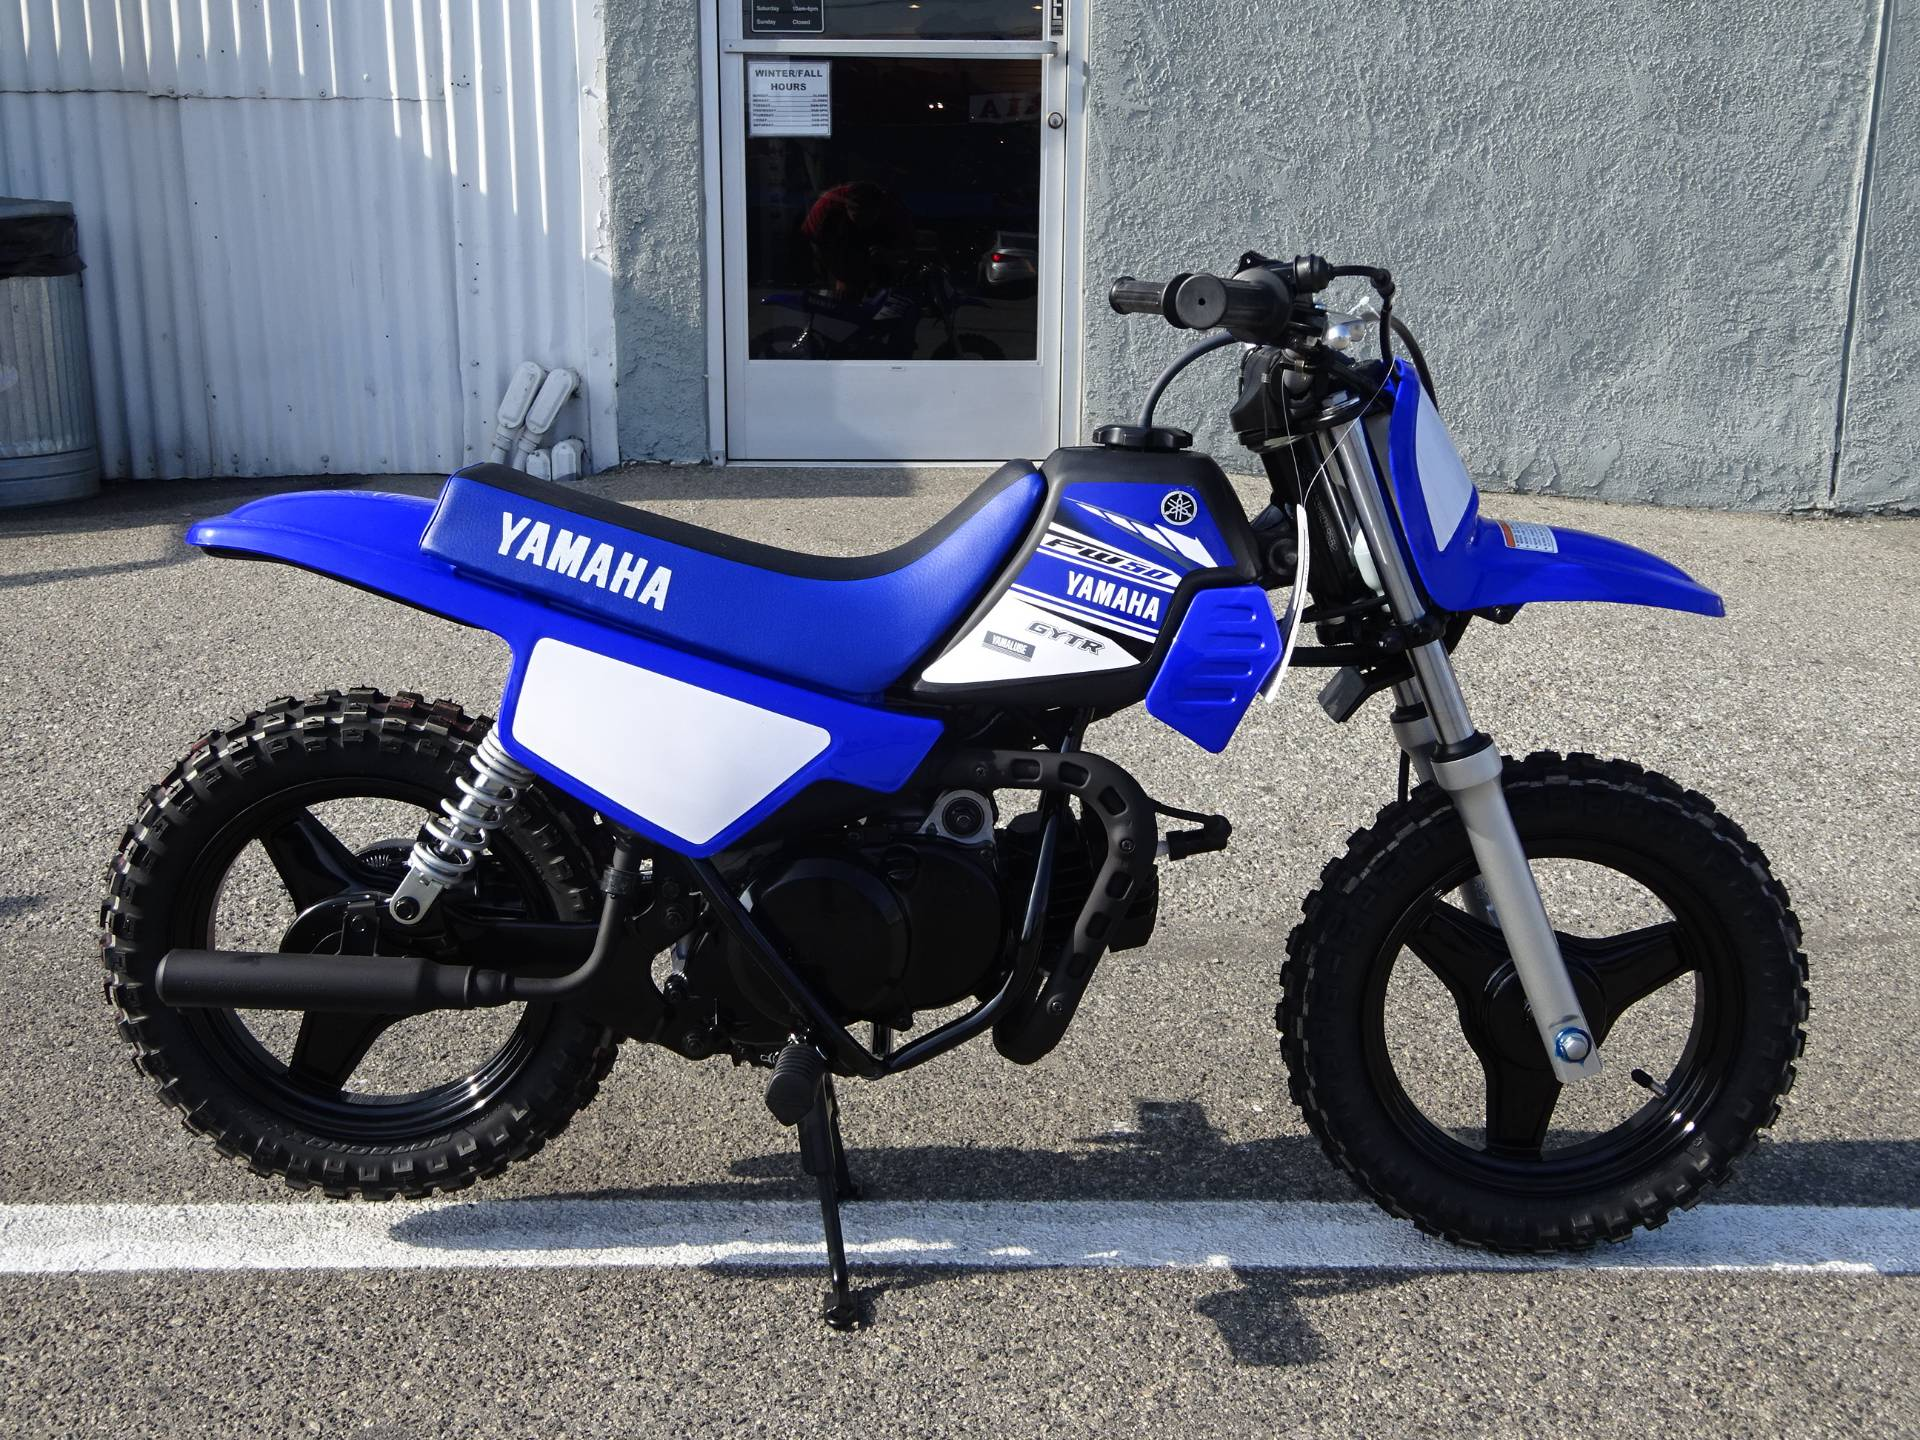 New 2017 yamaha pw50 motorcycles in harbor city ca for 2017 yamaha pw50